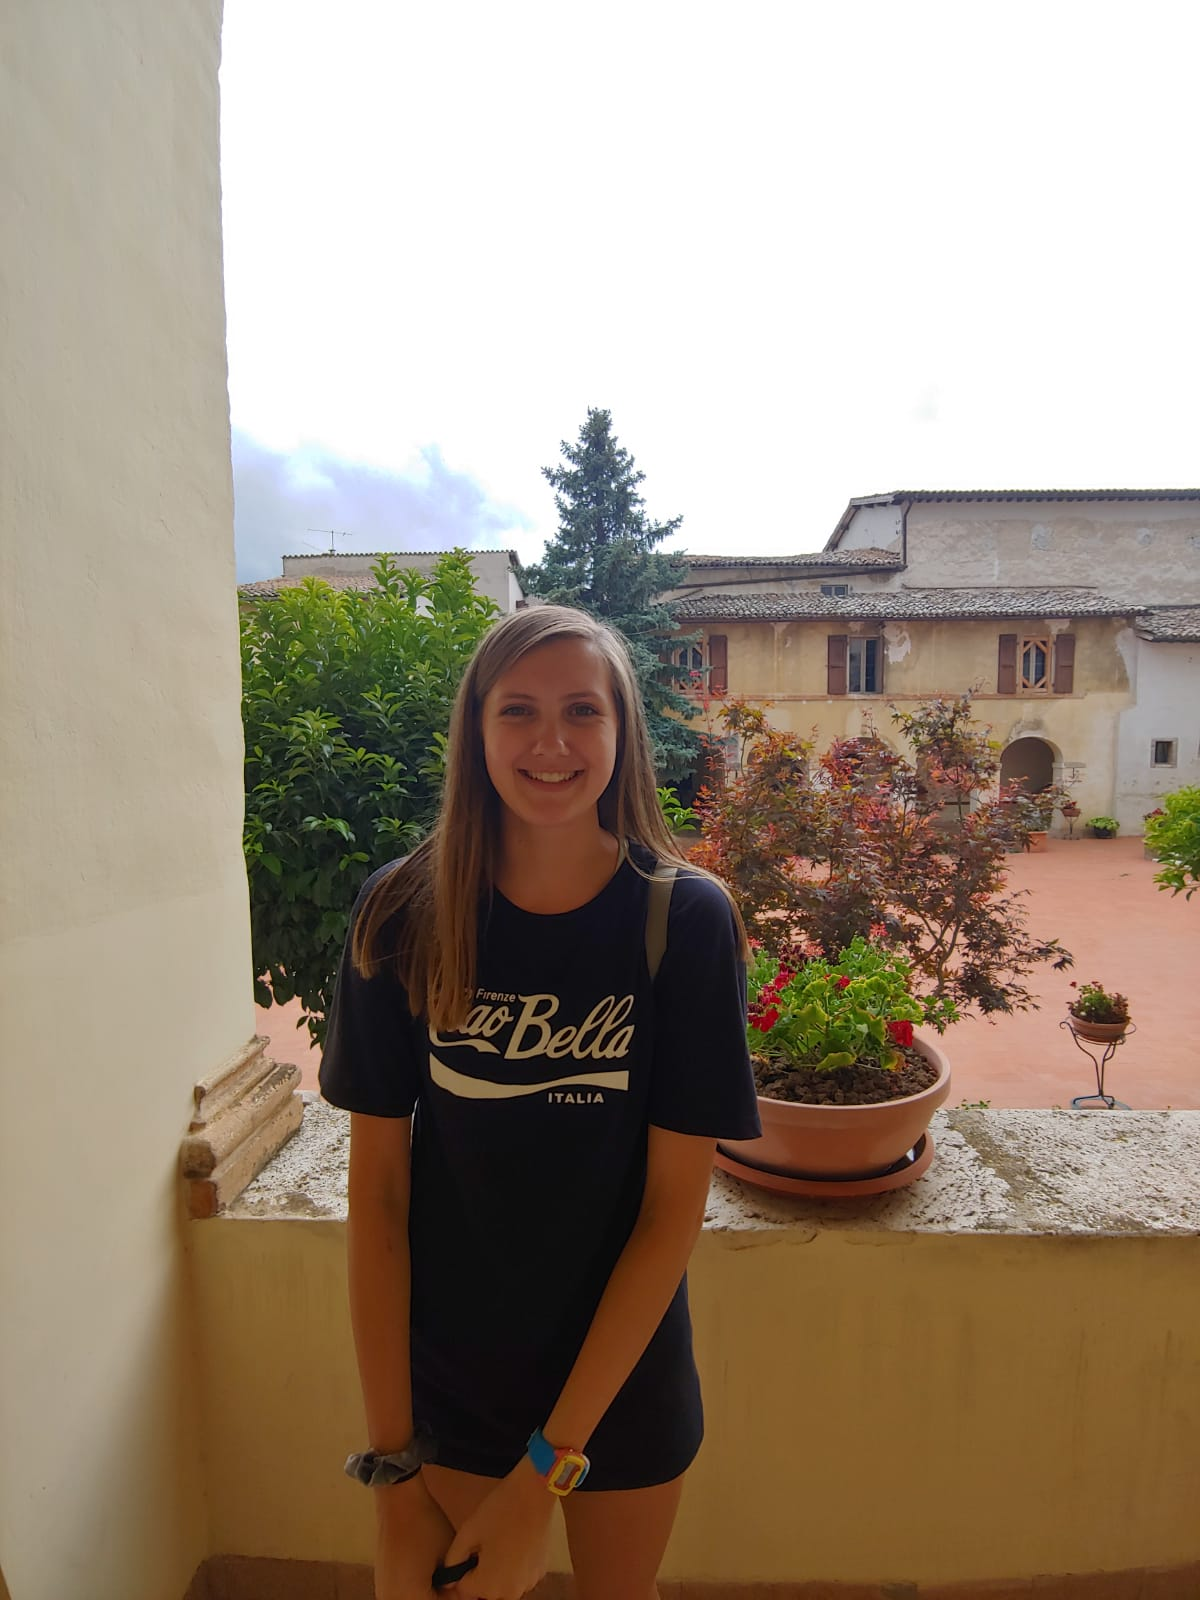 """ABBY- PHOTOGRAPHY 1) What inspires you here in Italy? """"The friendly people.""""    2) What artist are you interested in right now? """"Cartier-bresson""""    3) What is your favorite dessert/food in Italy? Nutella and Strawberry Gelato."""""""